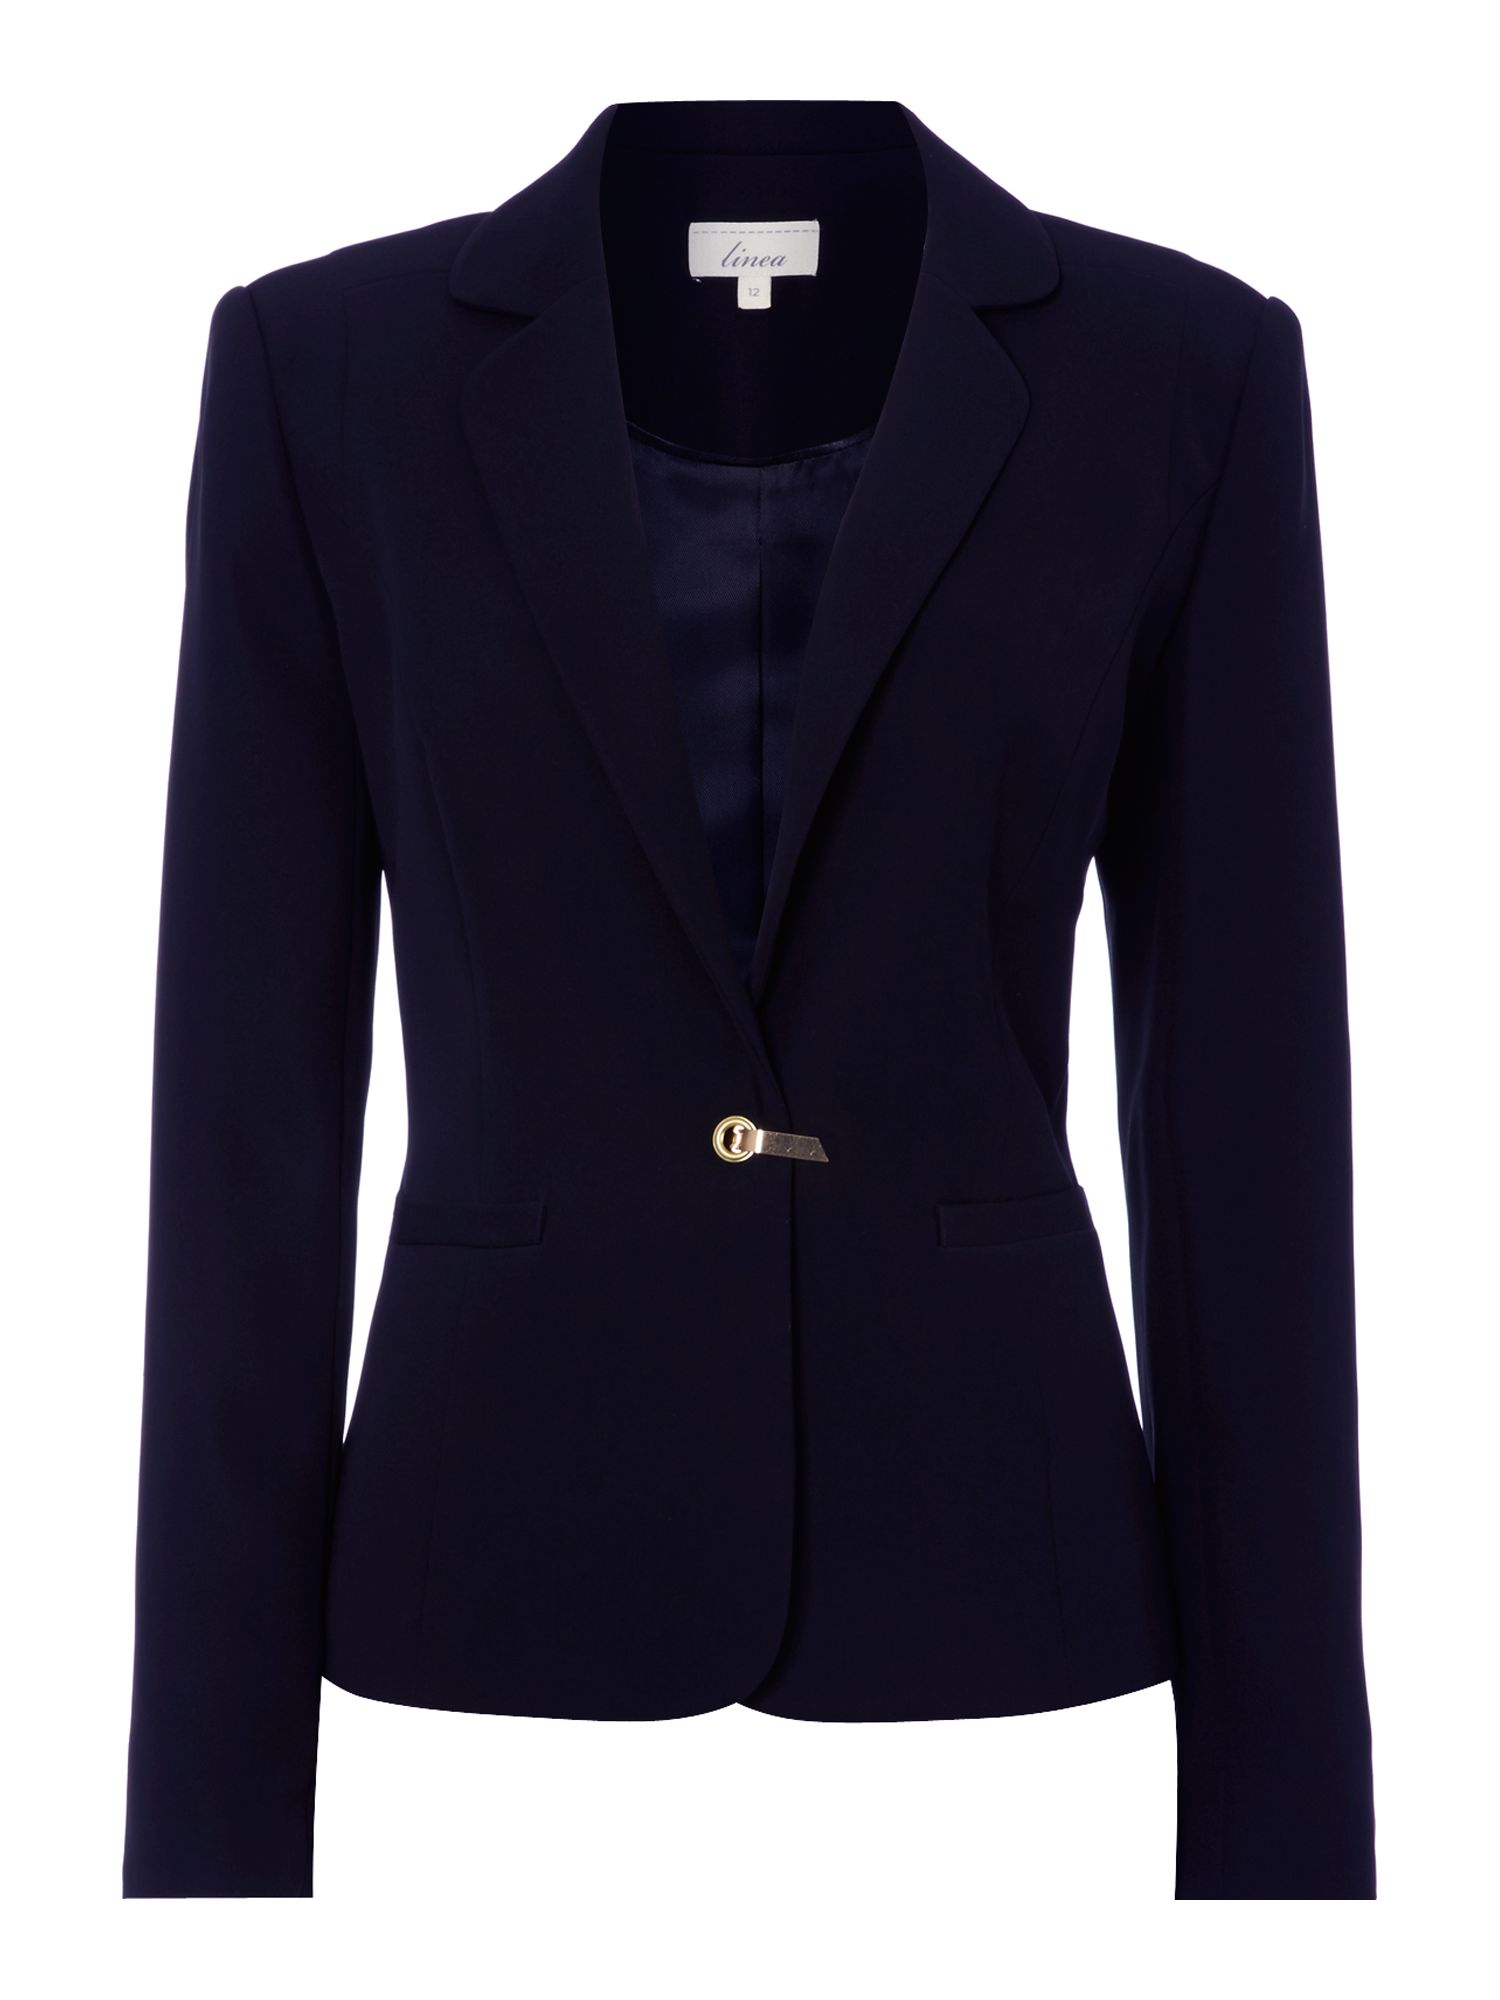 Susan buckle trim jacket